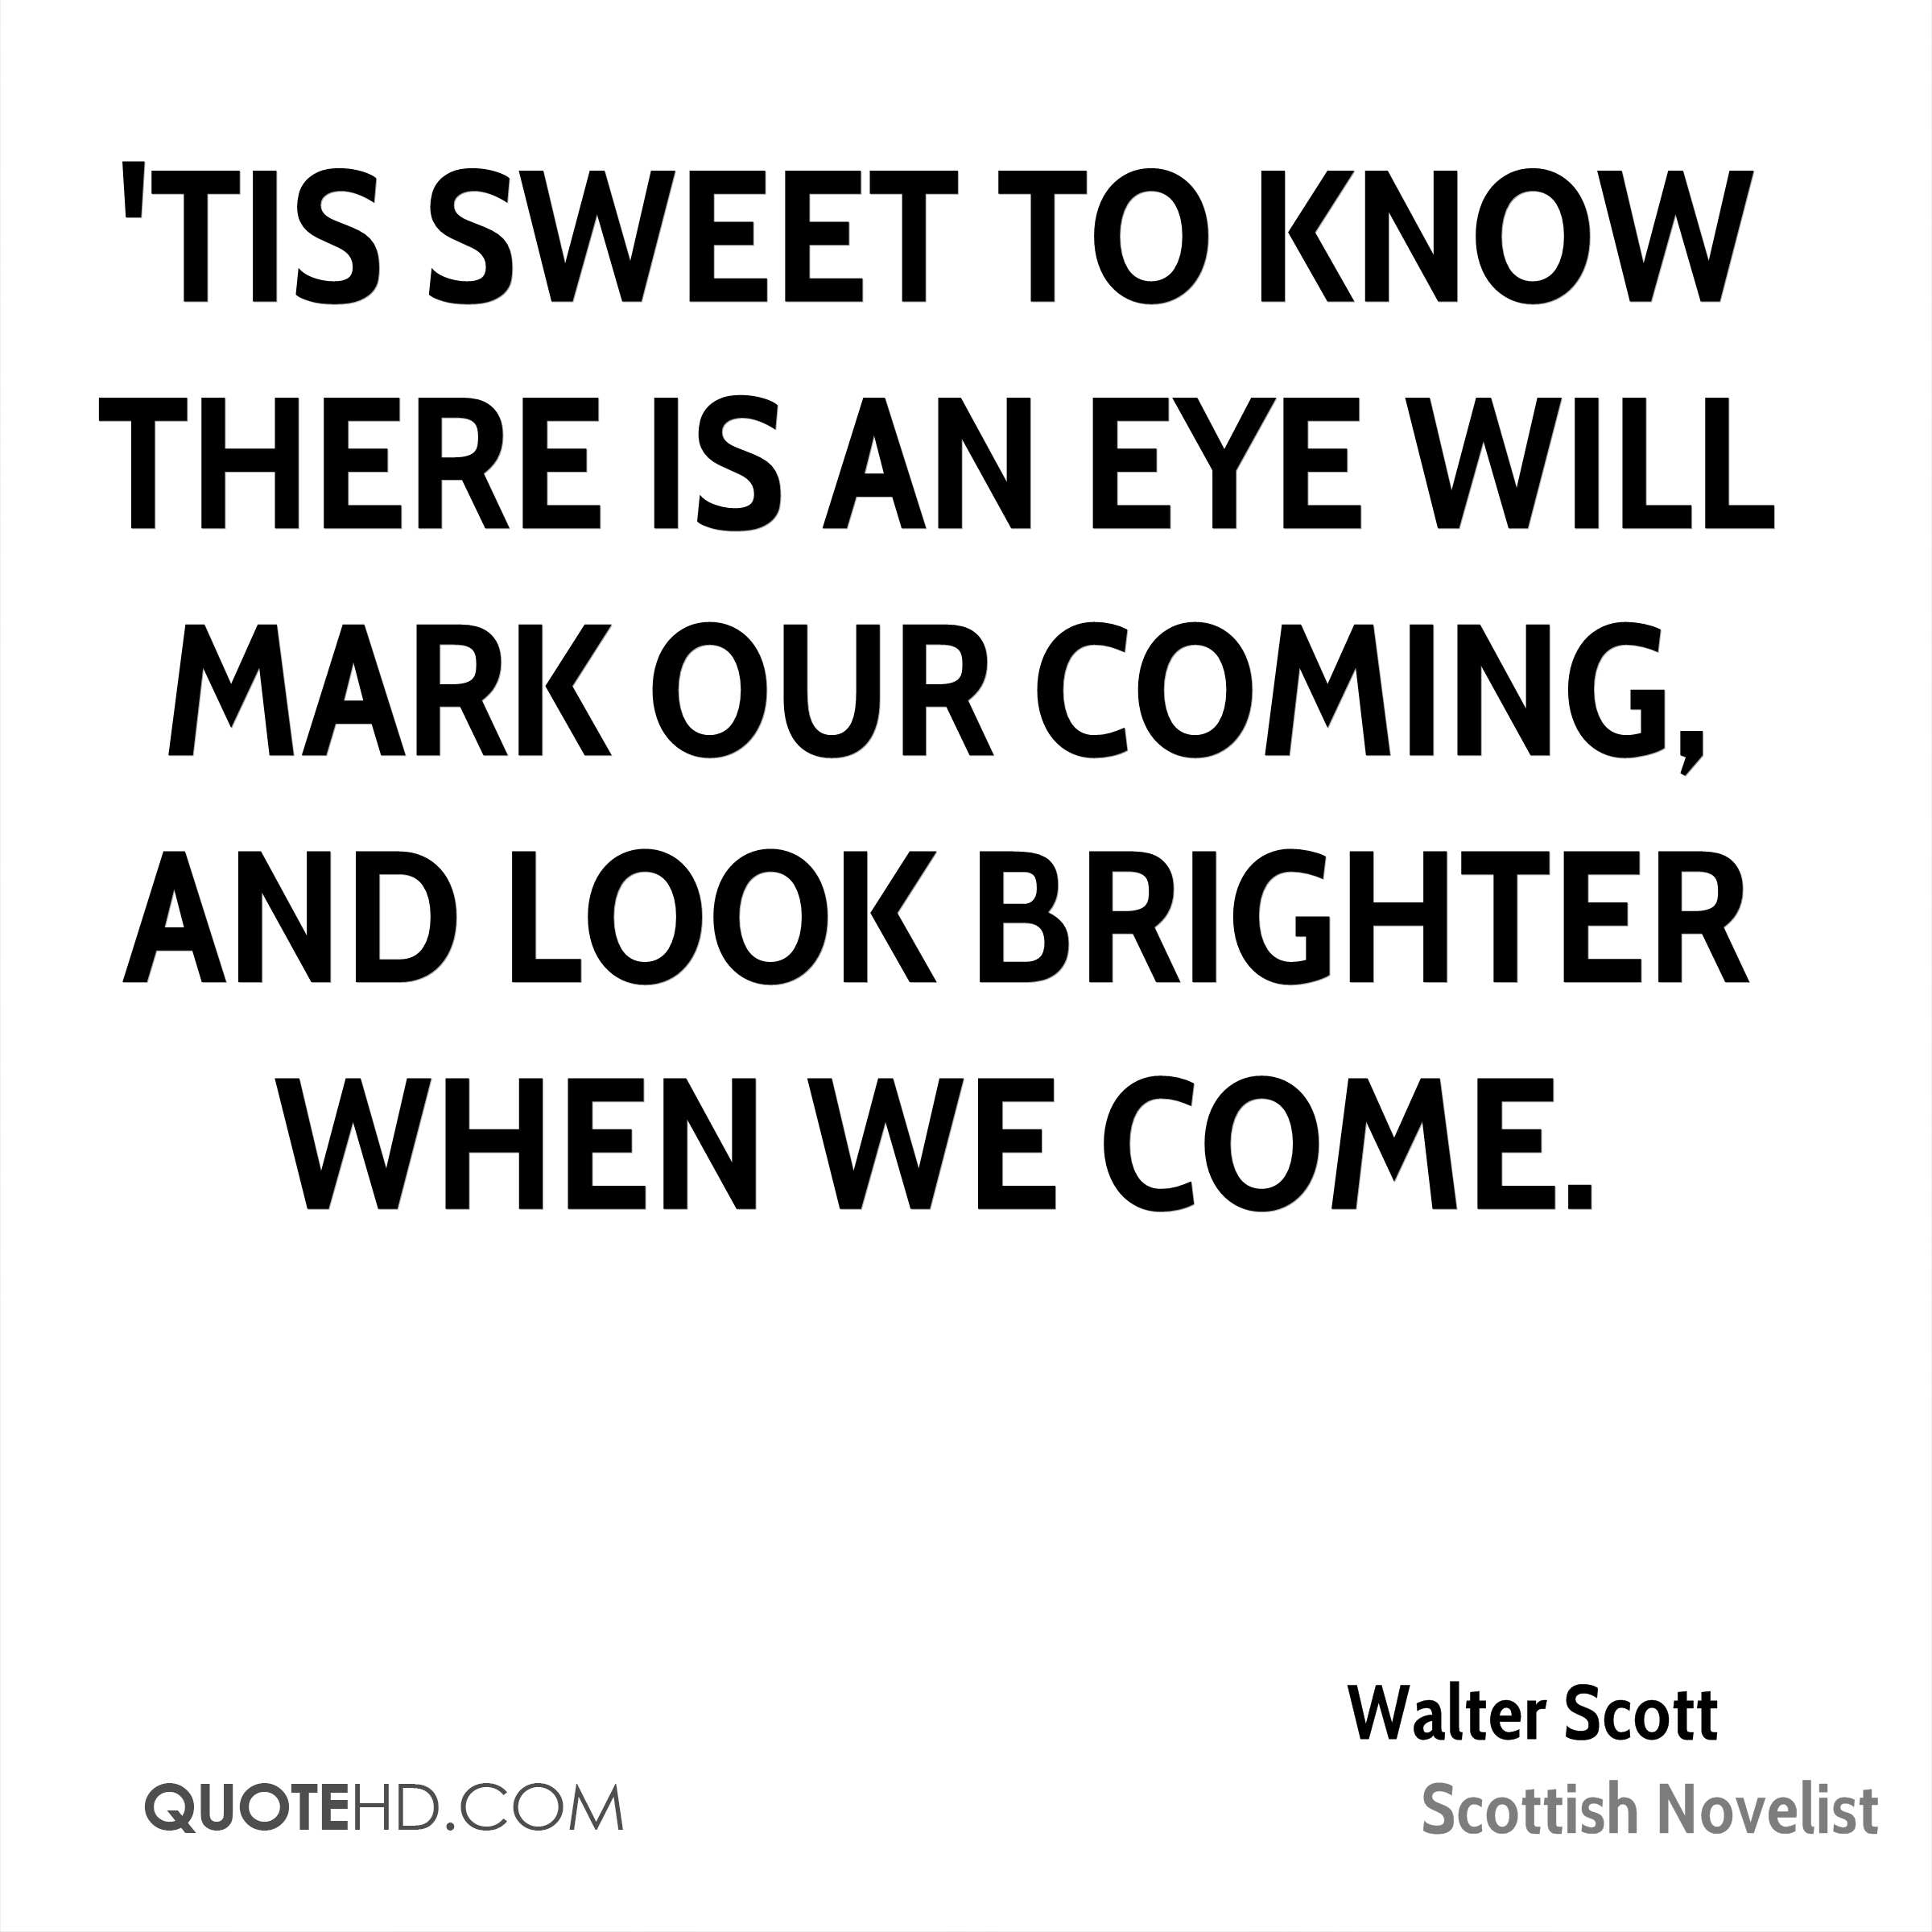 'Tis sweet to know there is an eye will mark our coming, and look brighter when we come.